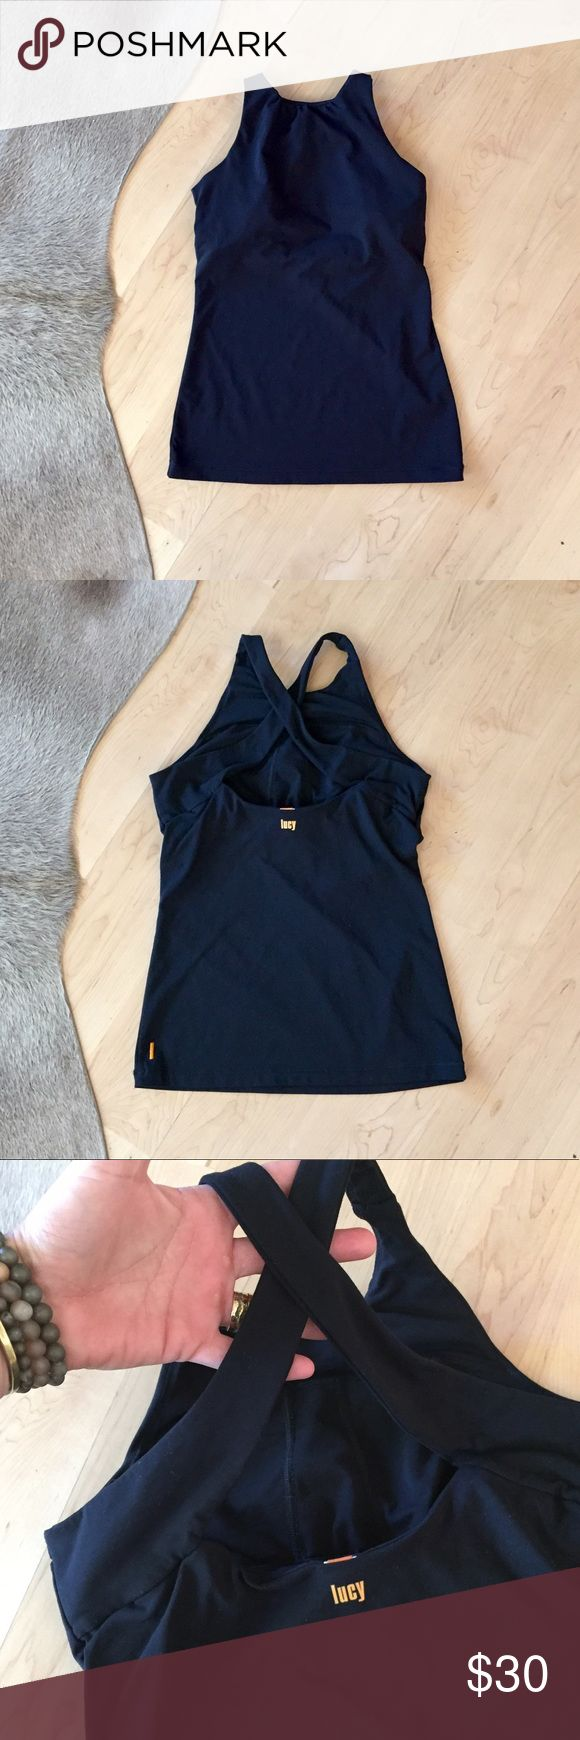 Lucy Cross Back Halter Lucy Cross Back Halter athletic top with built in shelf bra (no padding). Super cute. Only worn a few times. Cleaning out my workout wear section of my closet. Lucy Tops Tank Tops